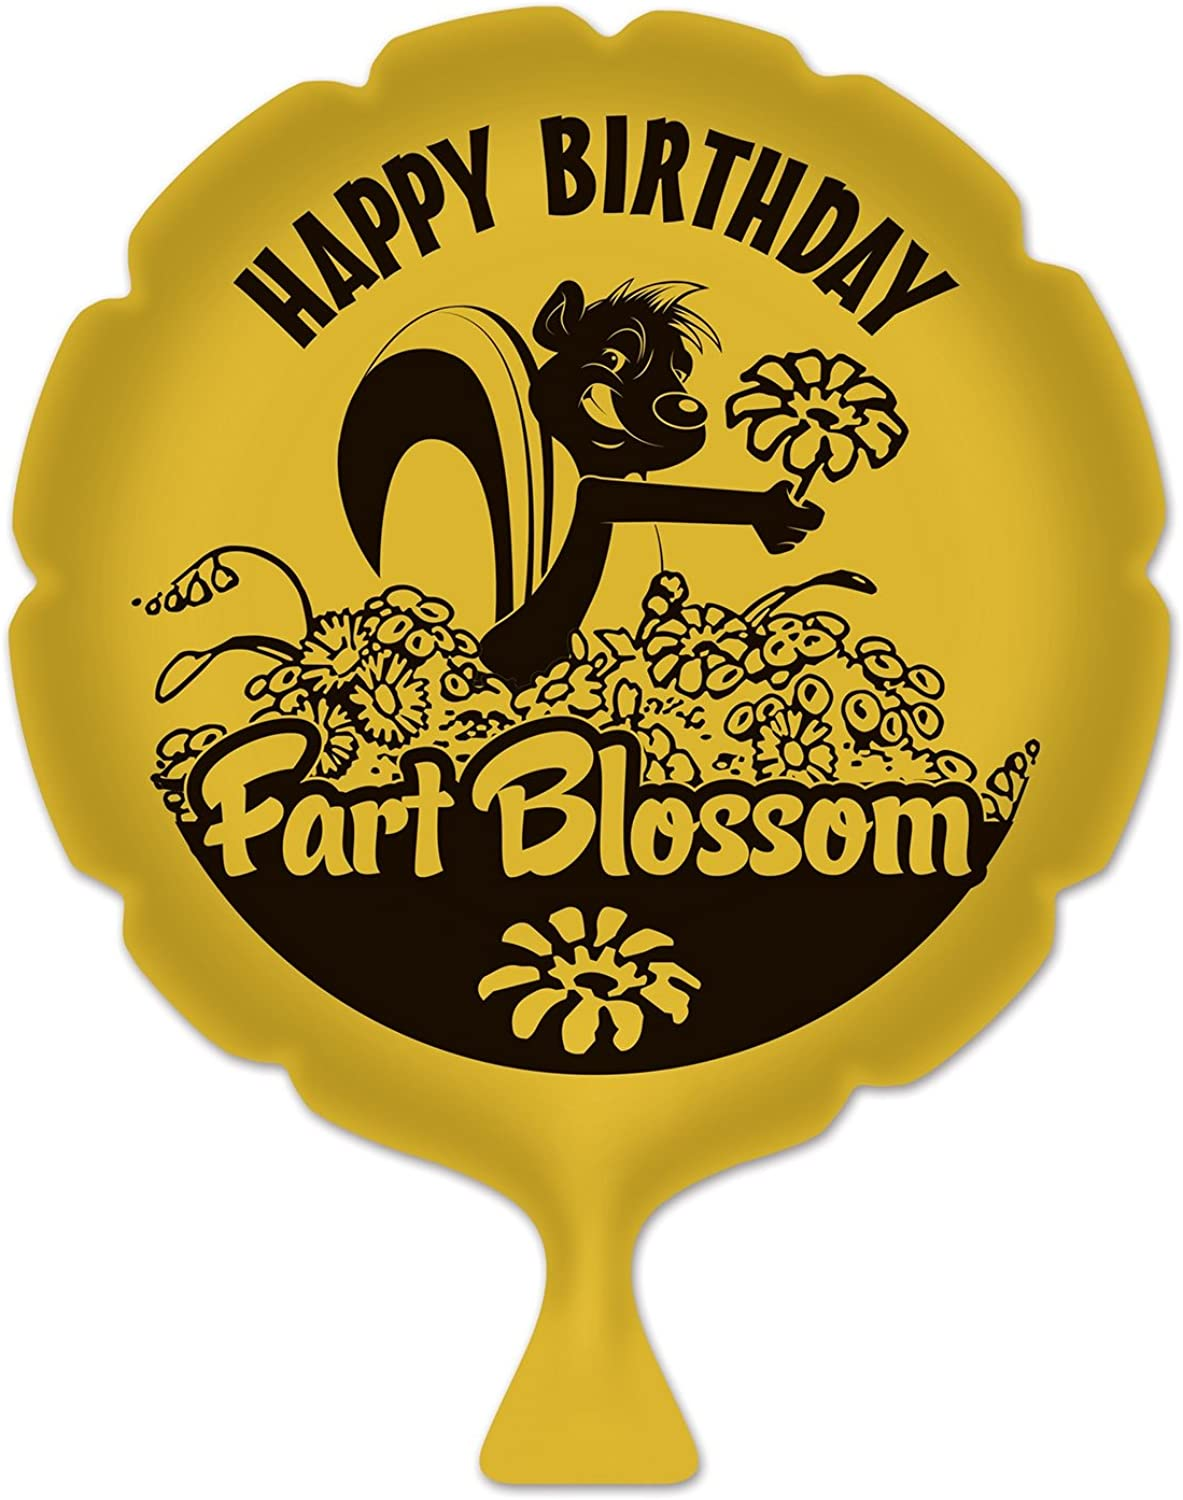 Beistle 54265 Birthday Fart Blossom Whoopee Cushion, 8-Inch, Yellow Black